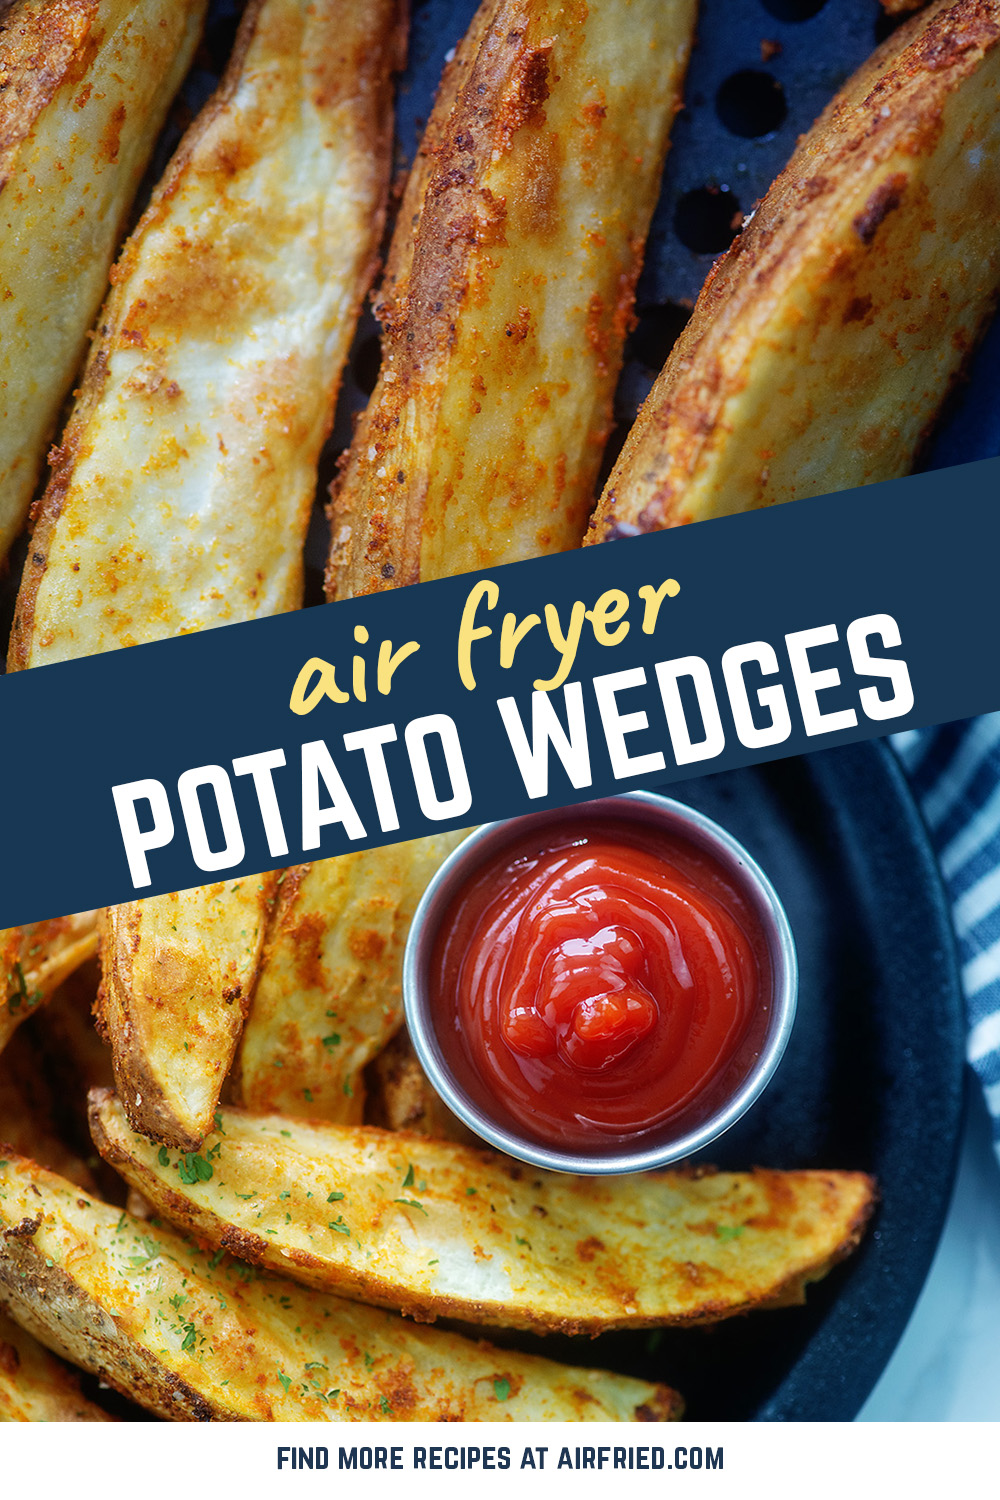 The air fryer makes your potato wedges crispy on the outside and soft on the inside! #recipes #airfried